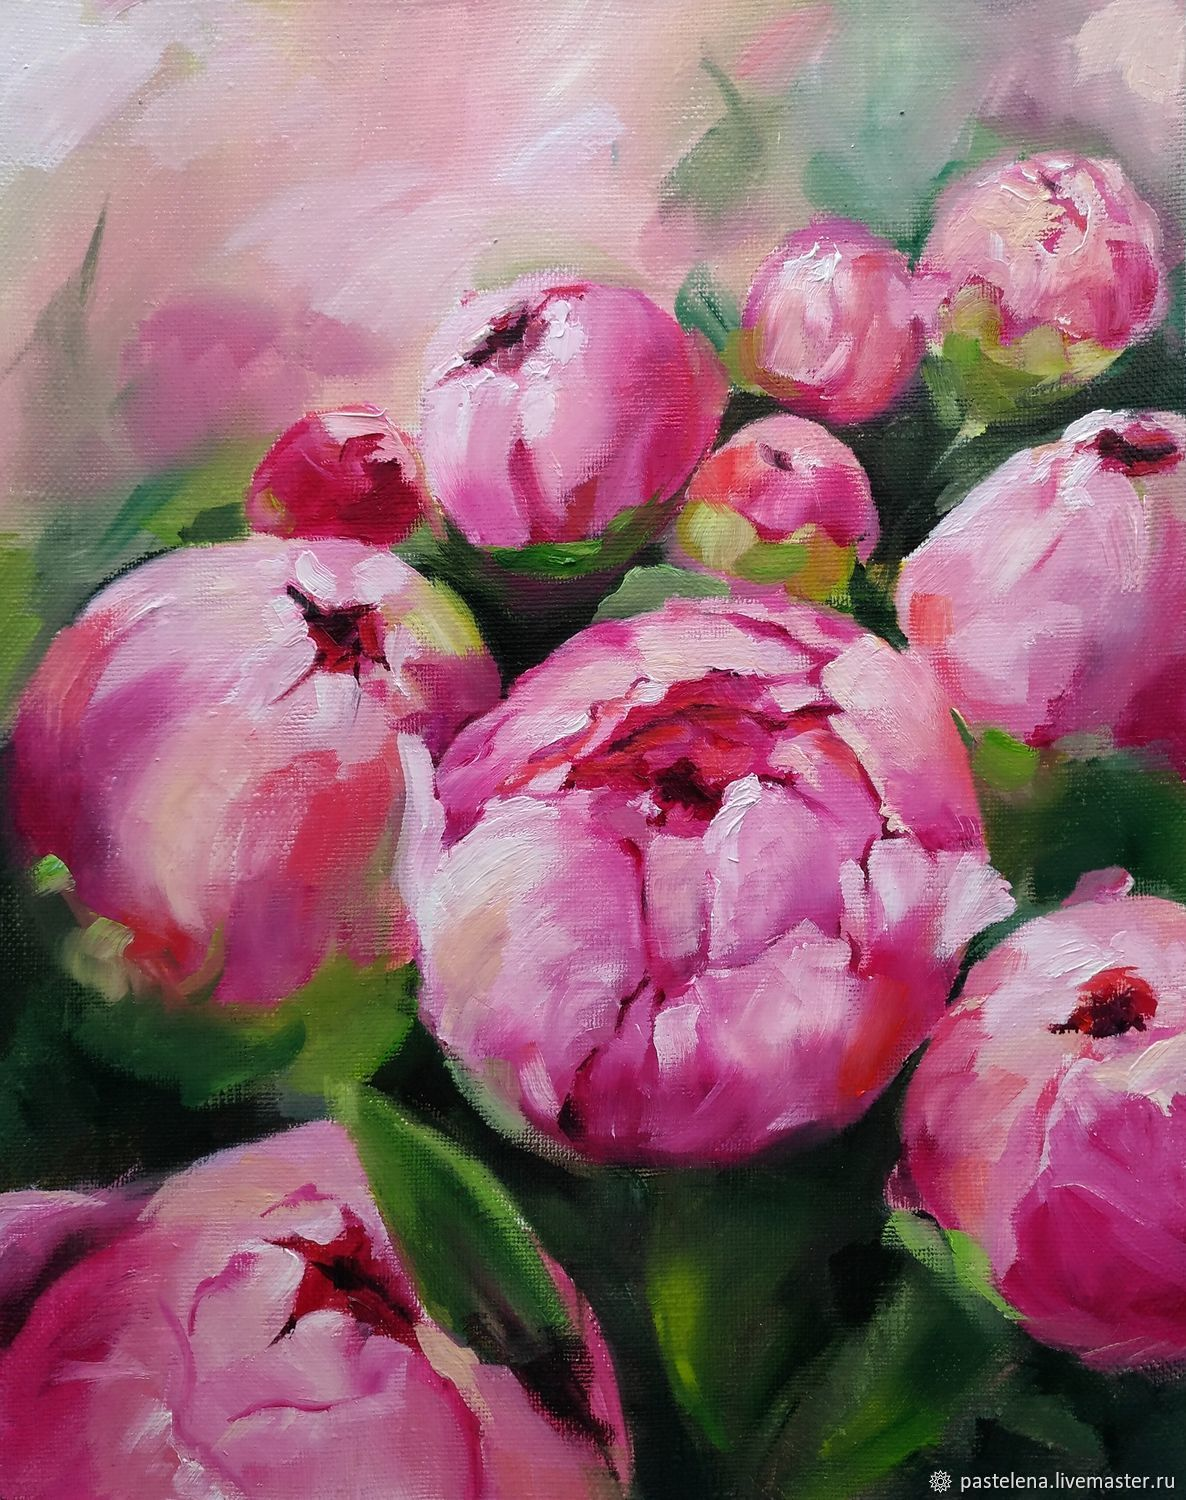 Oil painting Peonies (pink green flowers), Pictures, ,  Фото №1